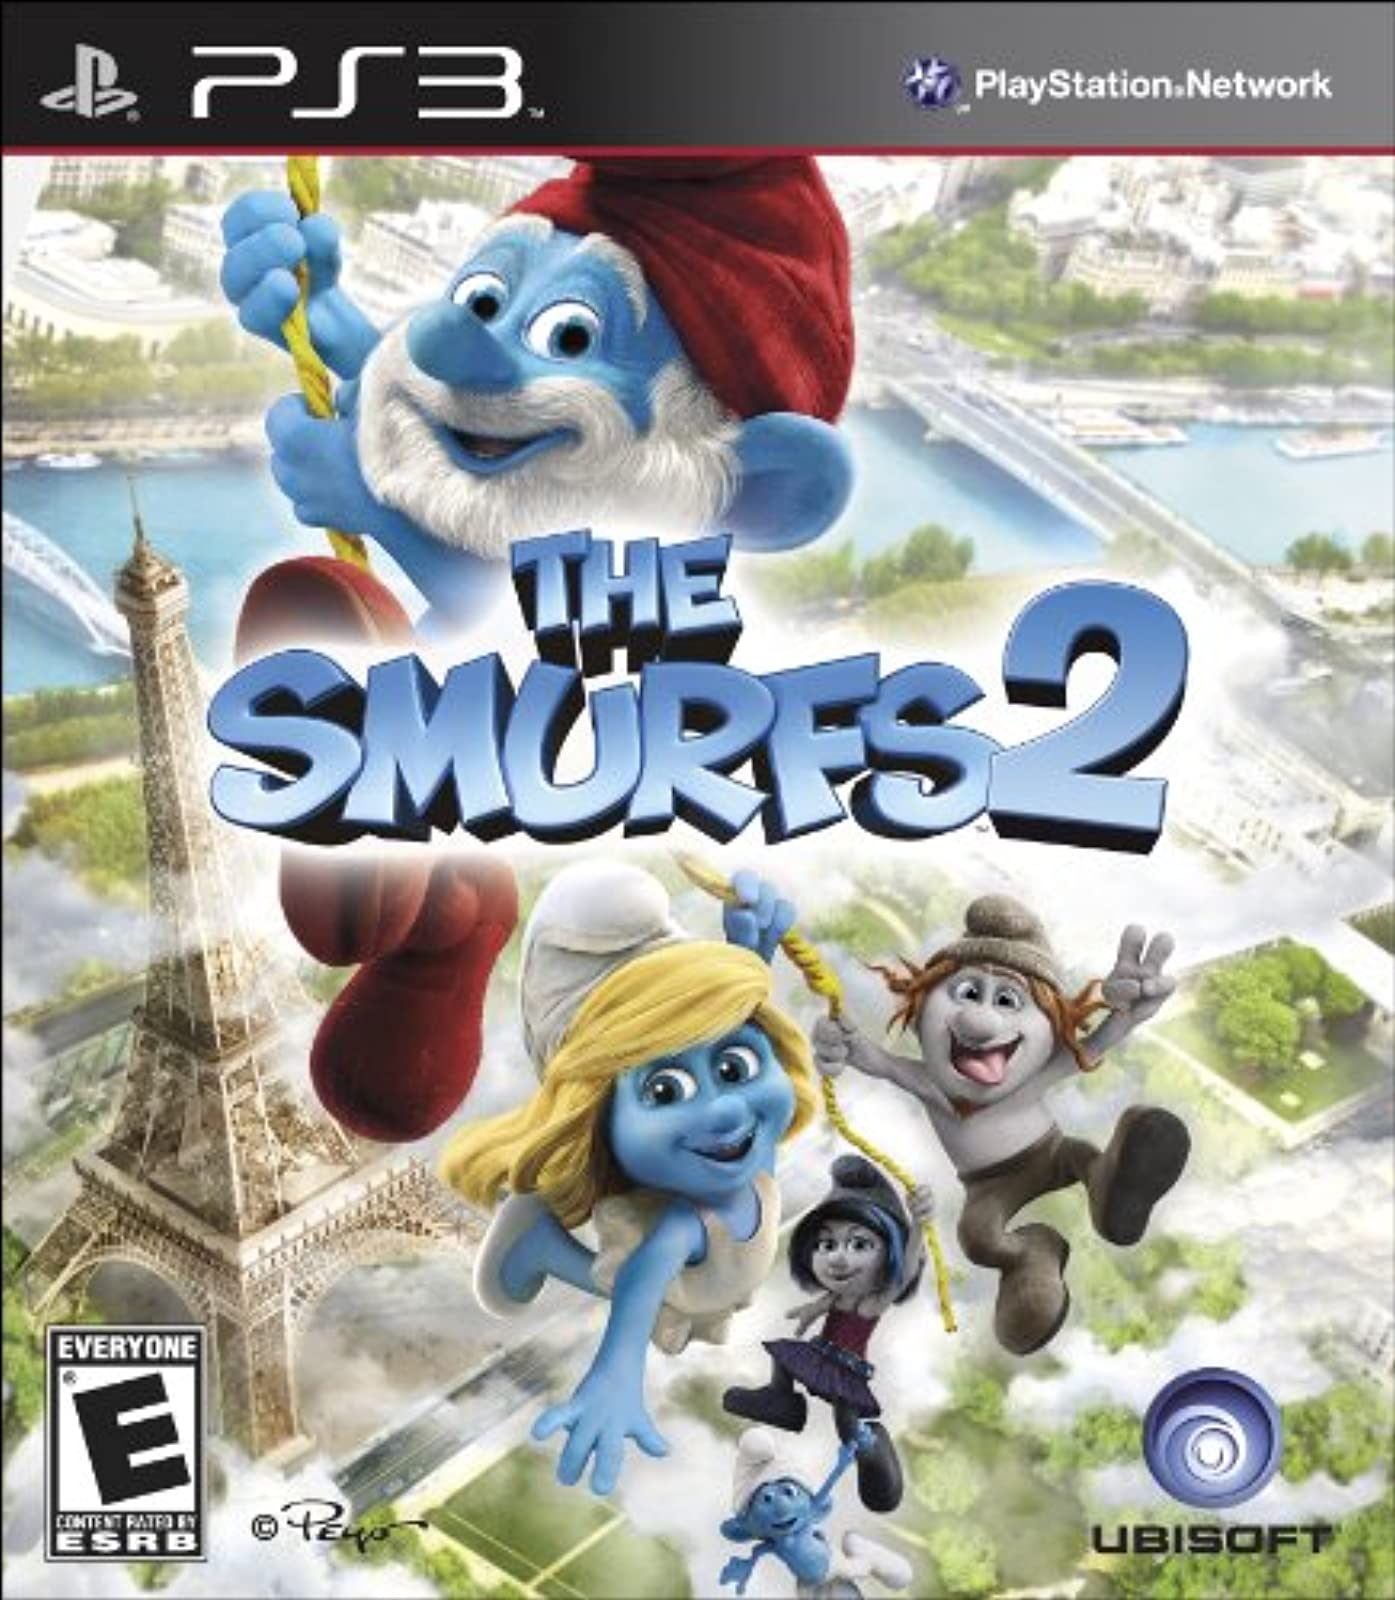 The Smurfs 2 For PlayStation 3 PS3